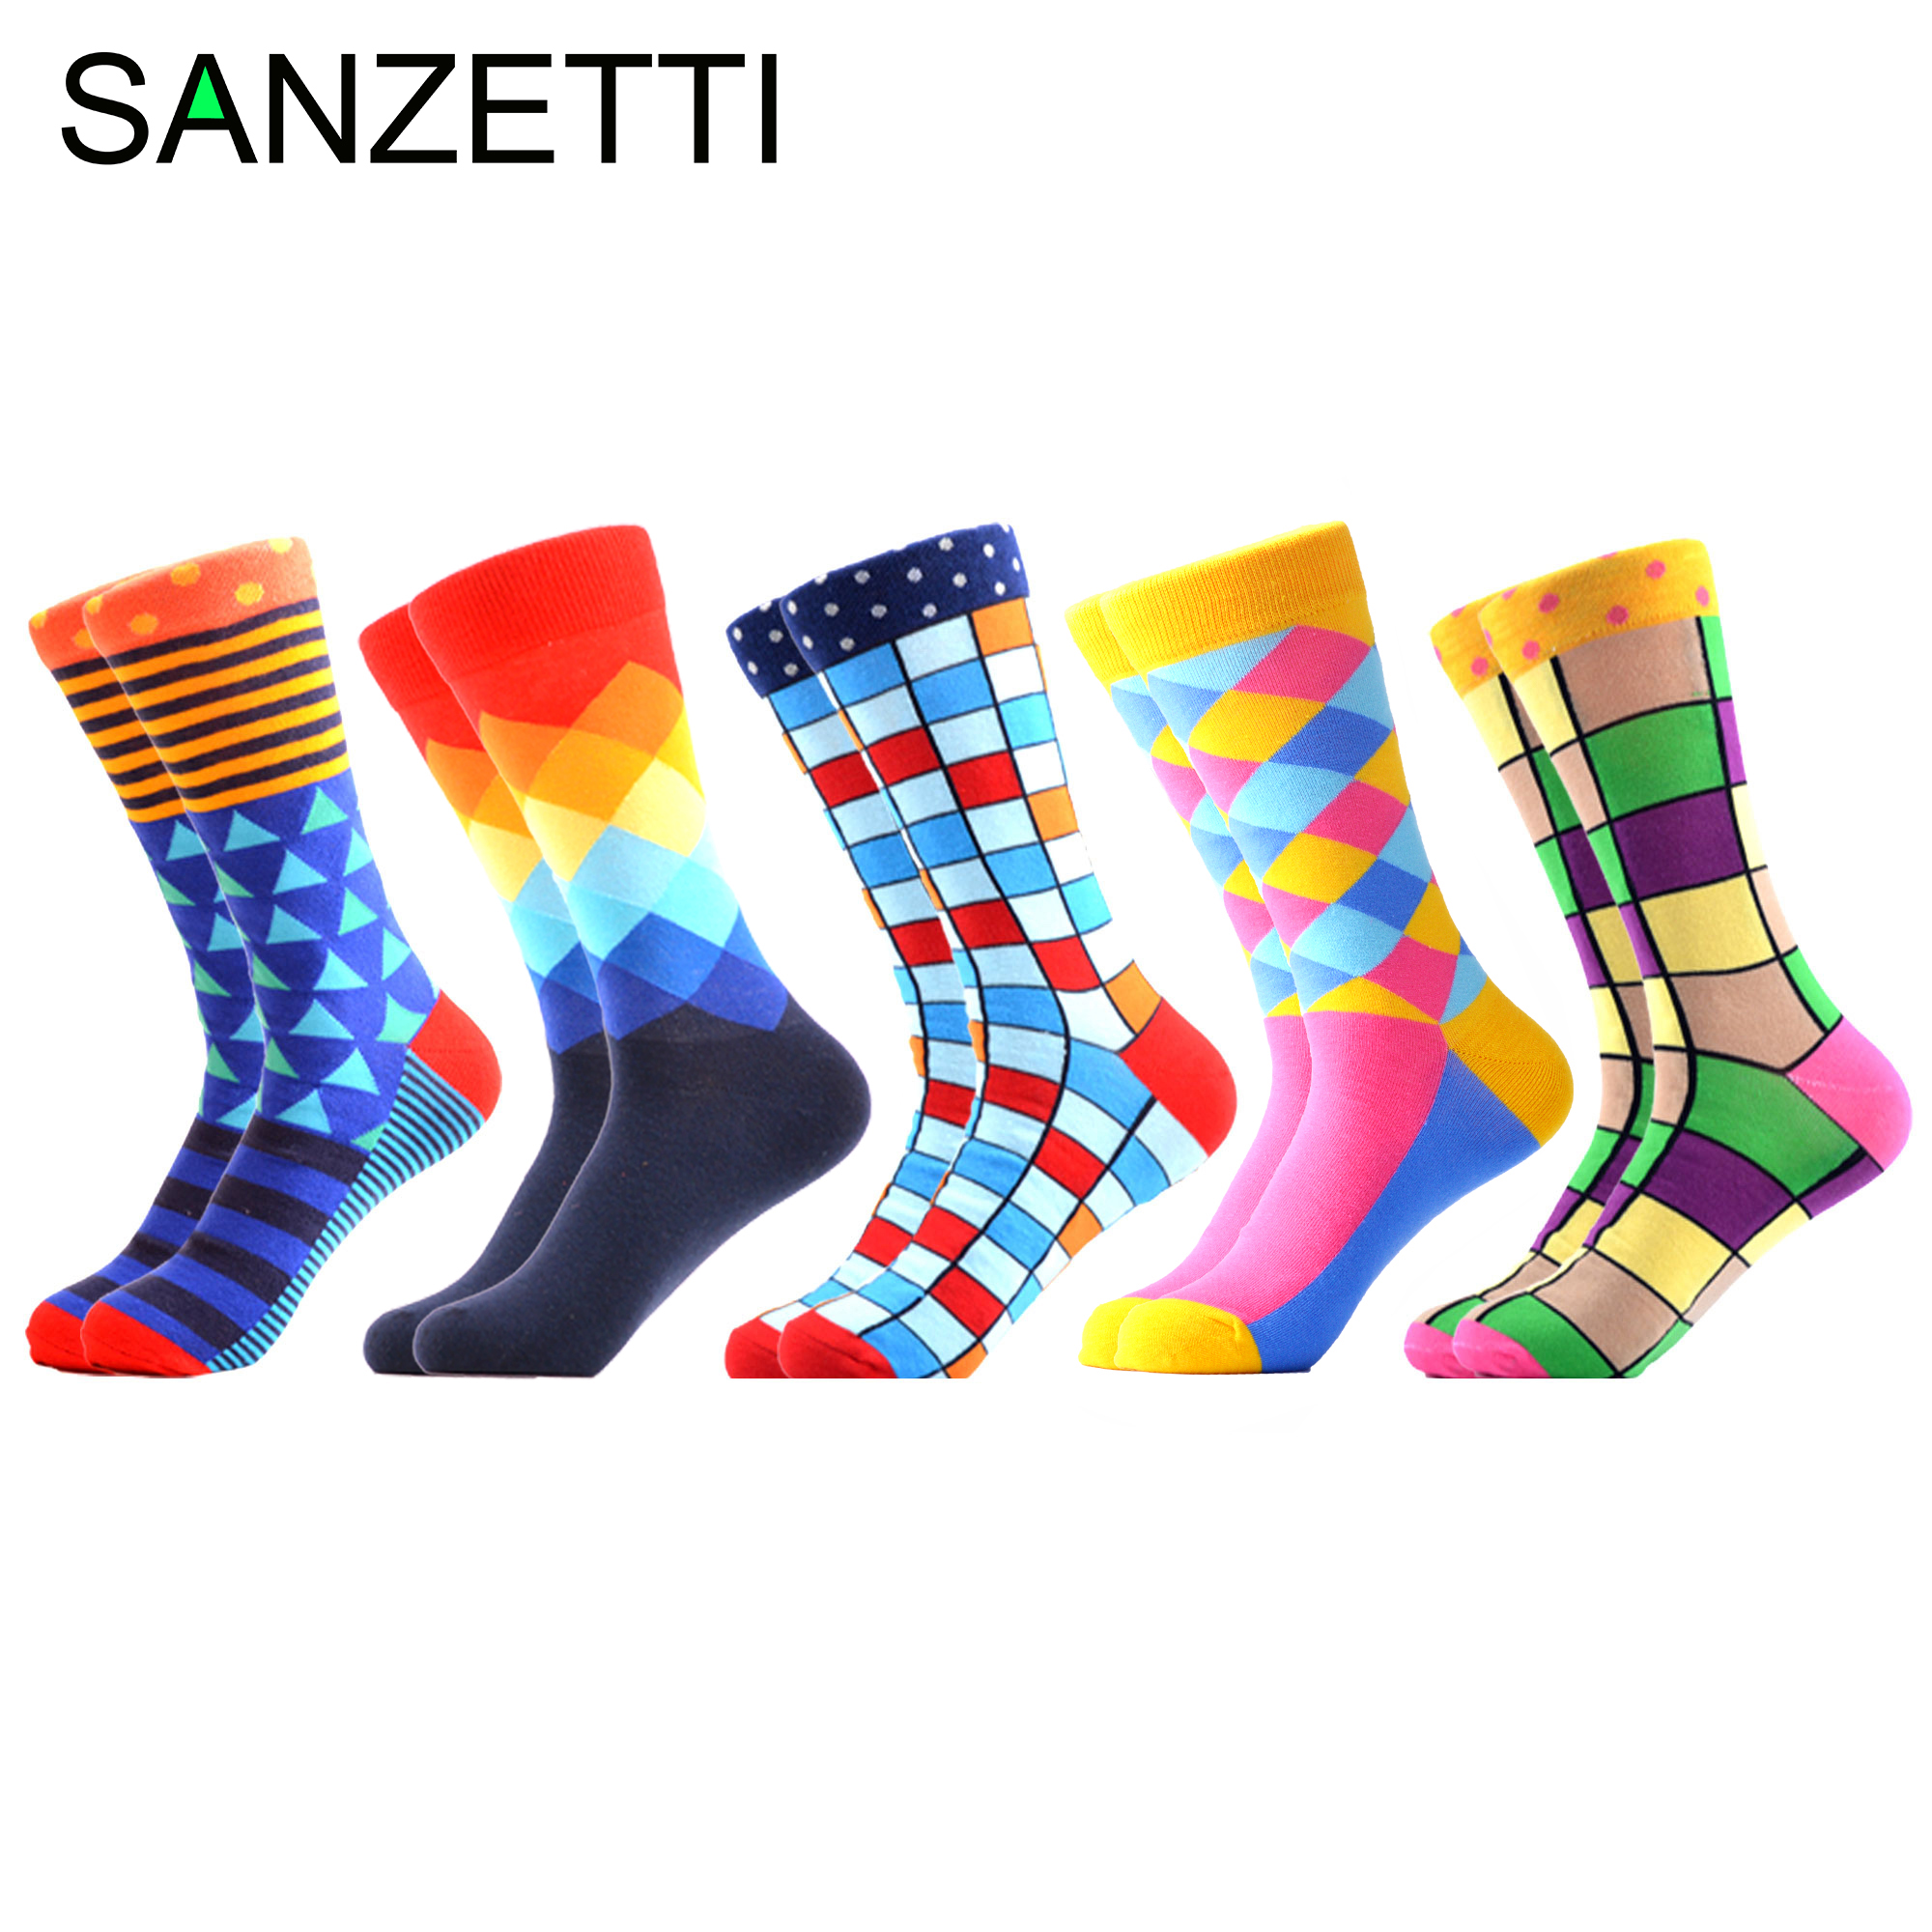 SANZETTI 5 Pairs/Lot 2020 New Men Casual Colorful Happy Socks Street Hip Hop Novelty Fun Combed Cotton Socks Wedding Gift Socks